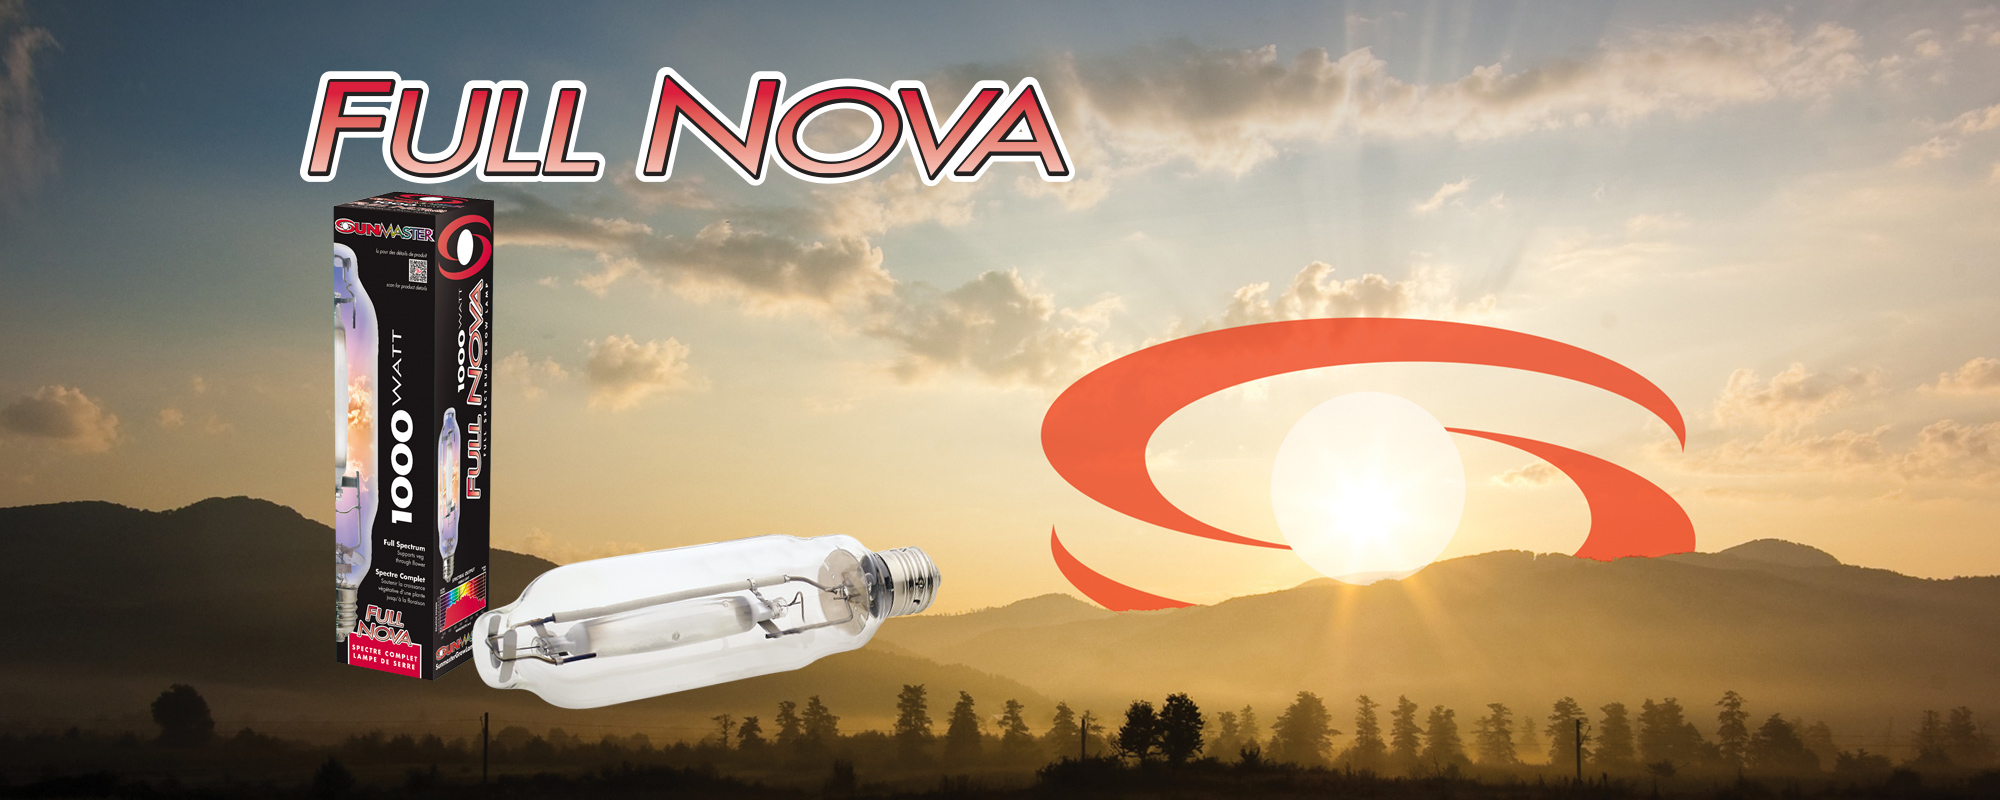 SUNMASTER Full Nova full spectrum grow lamps